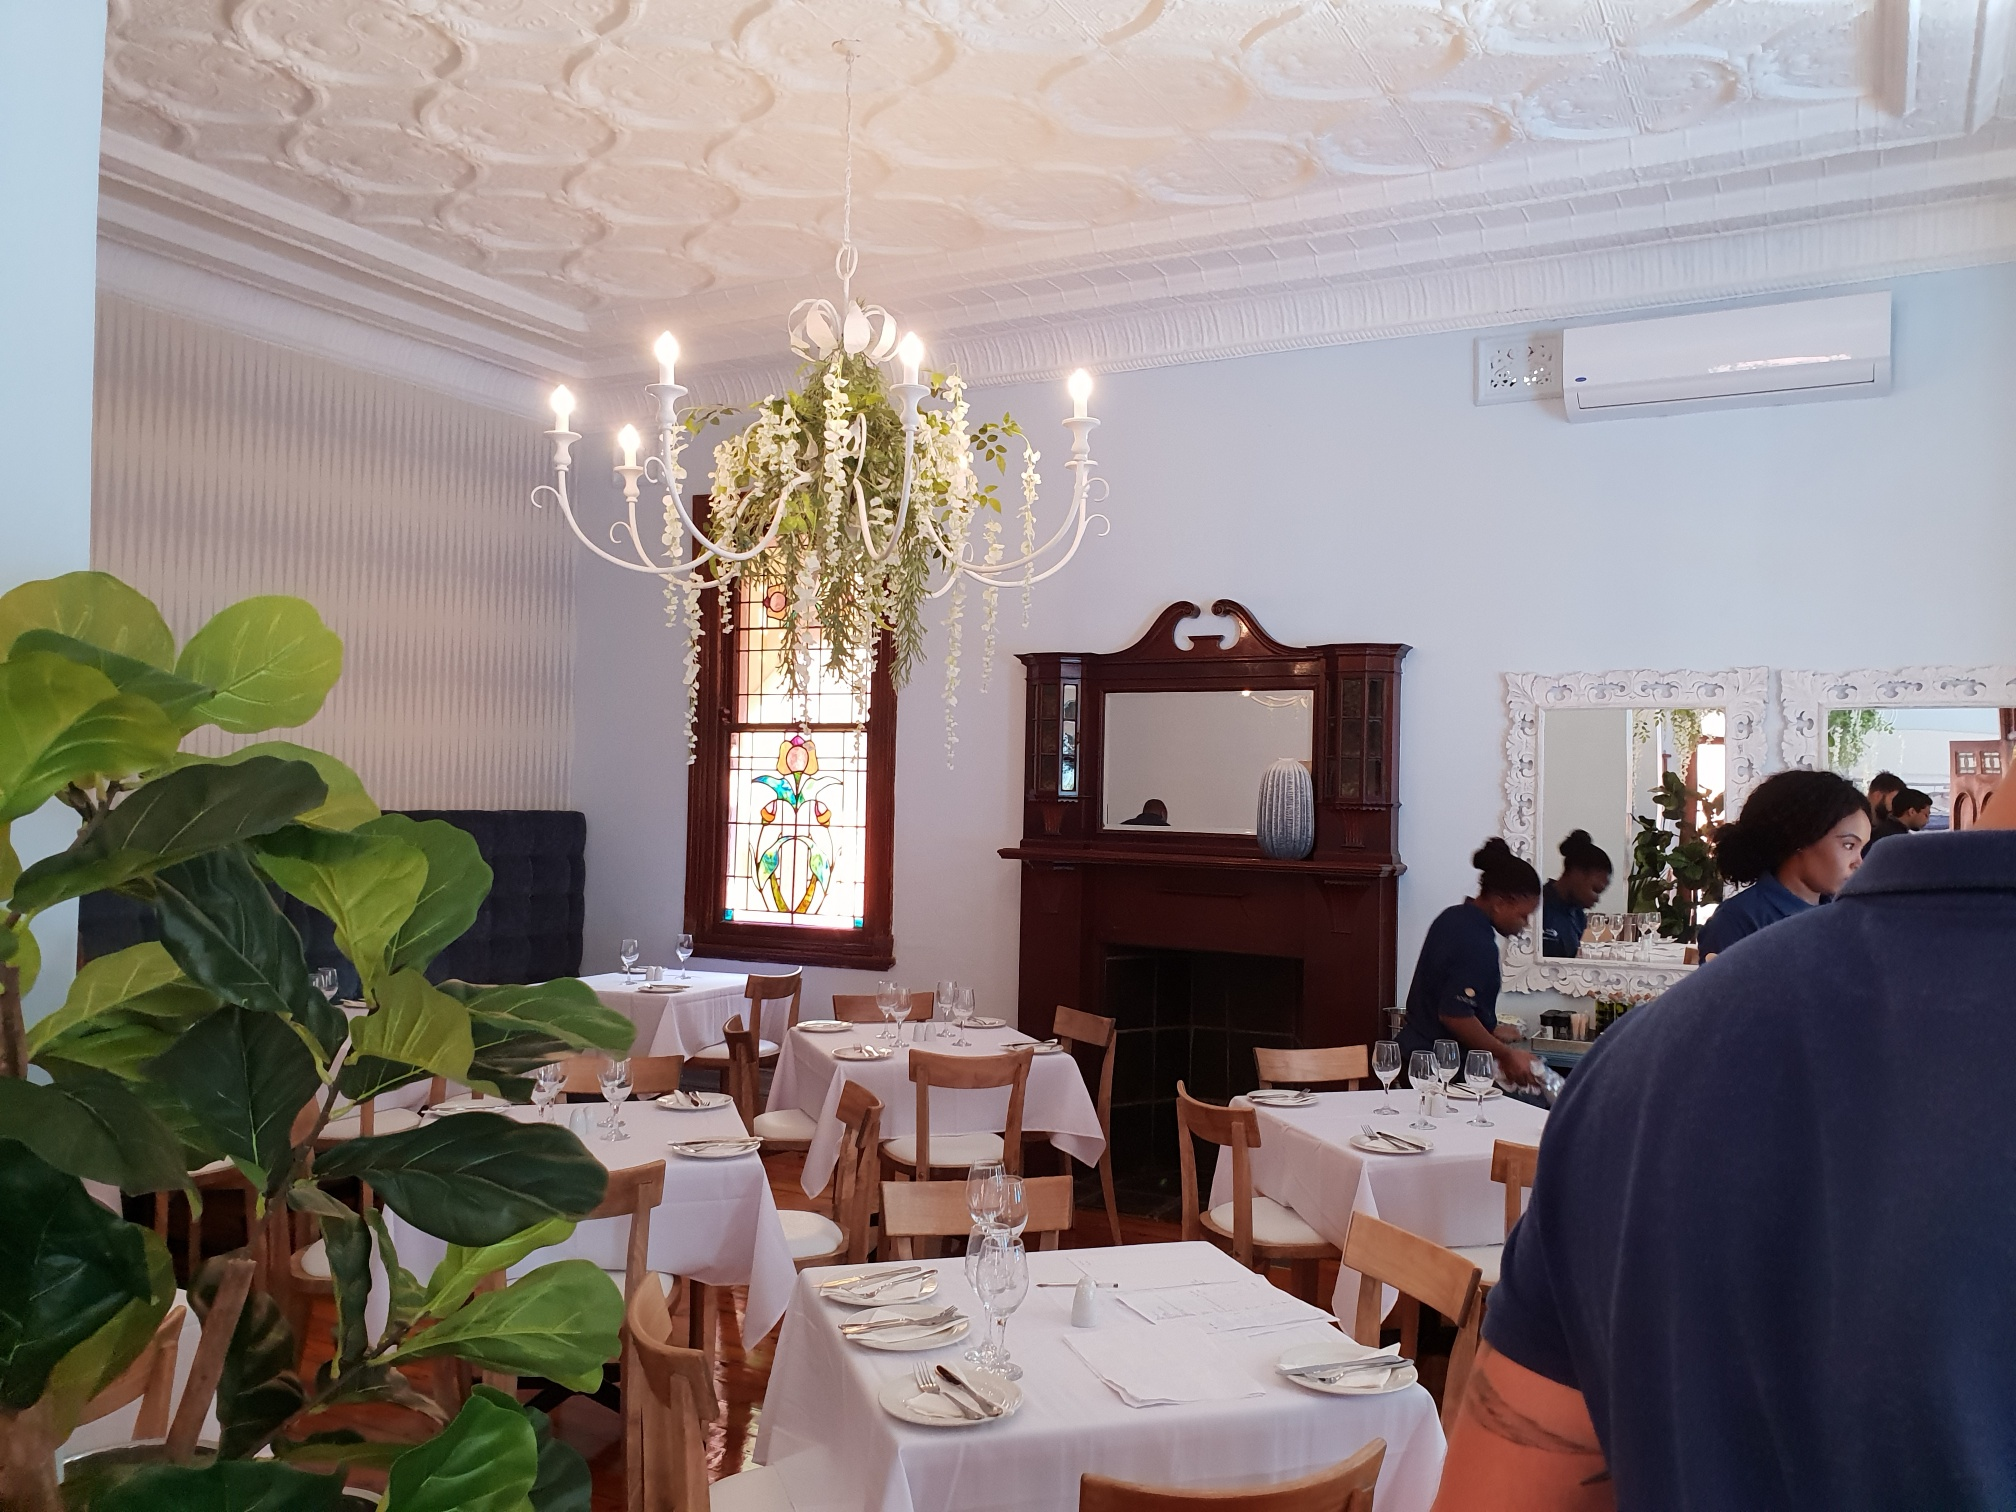 A Vintage Venue For A New Jack Salmon Cuizine Africa